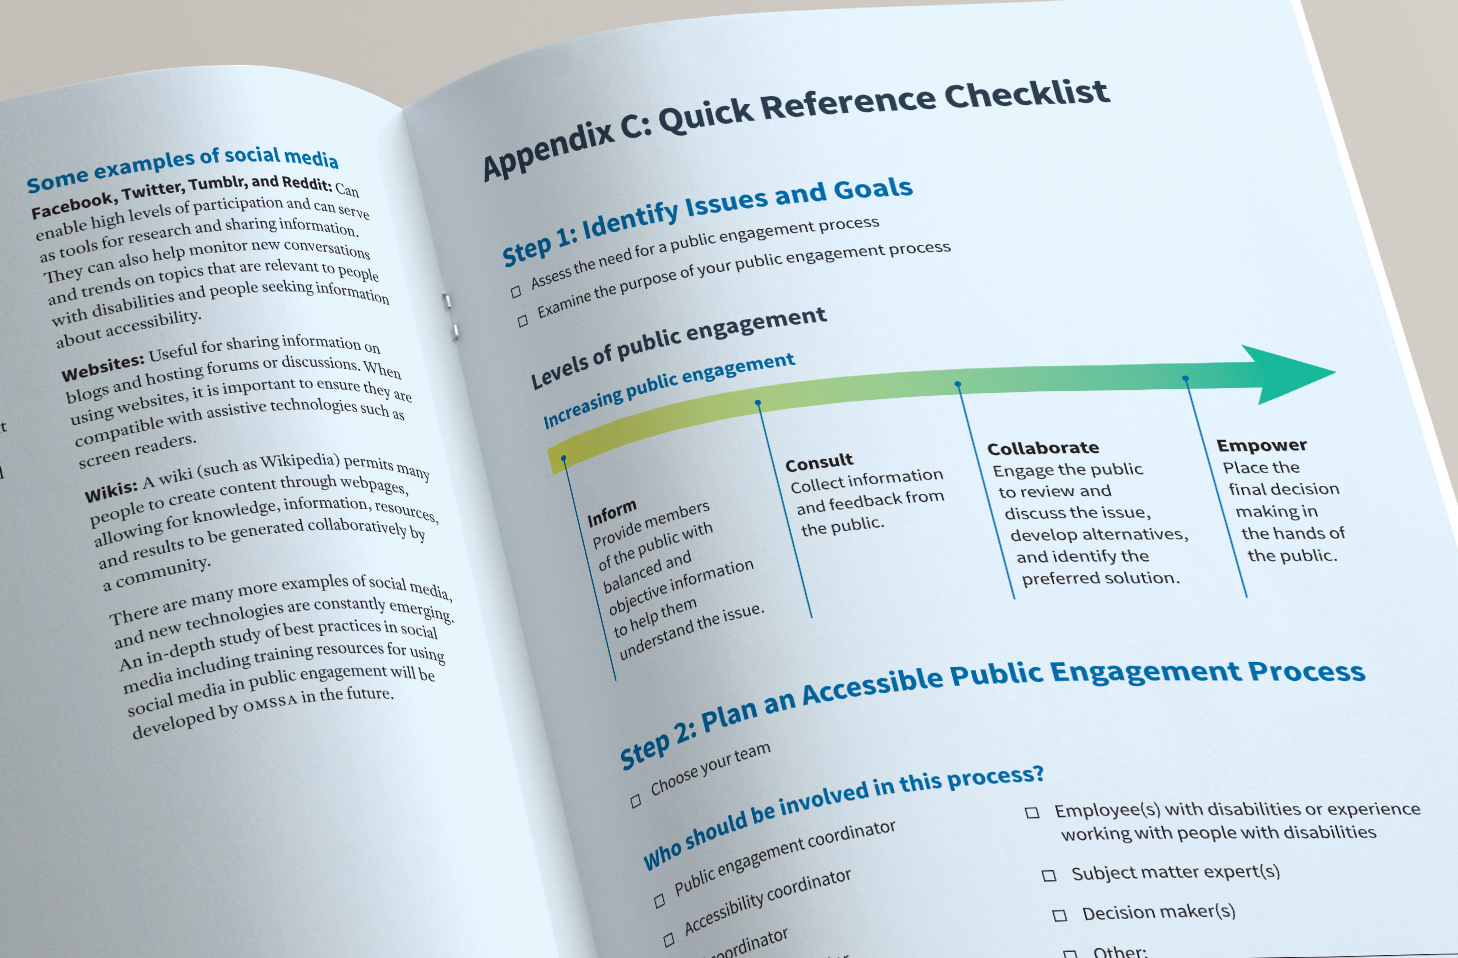 Guide to accessible public engagement: quick reference checklist.